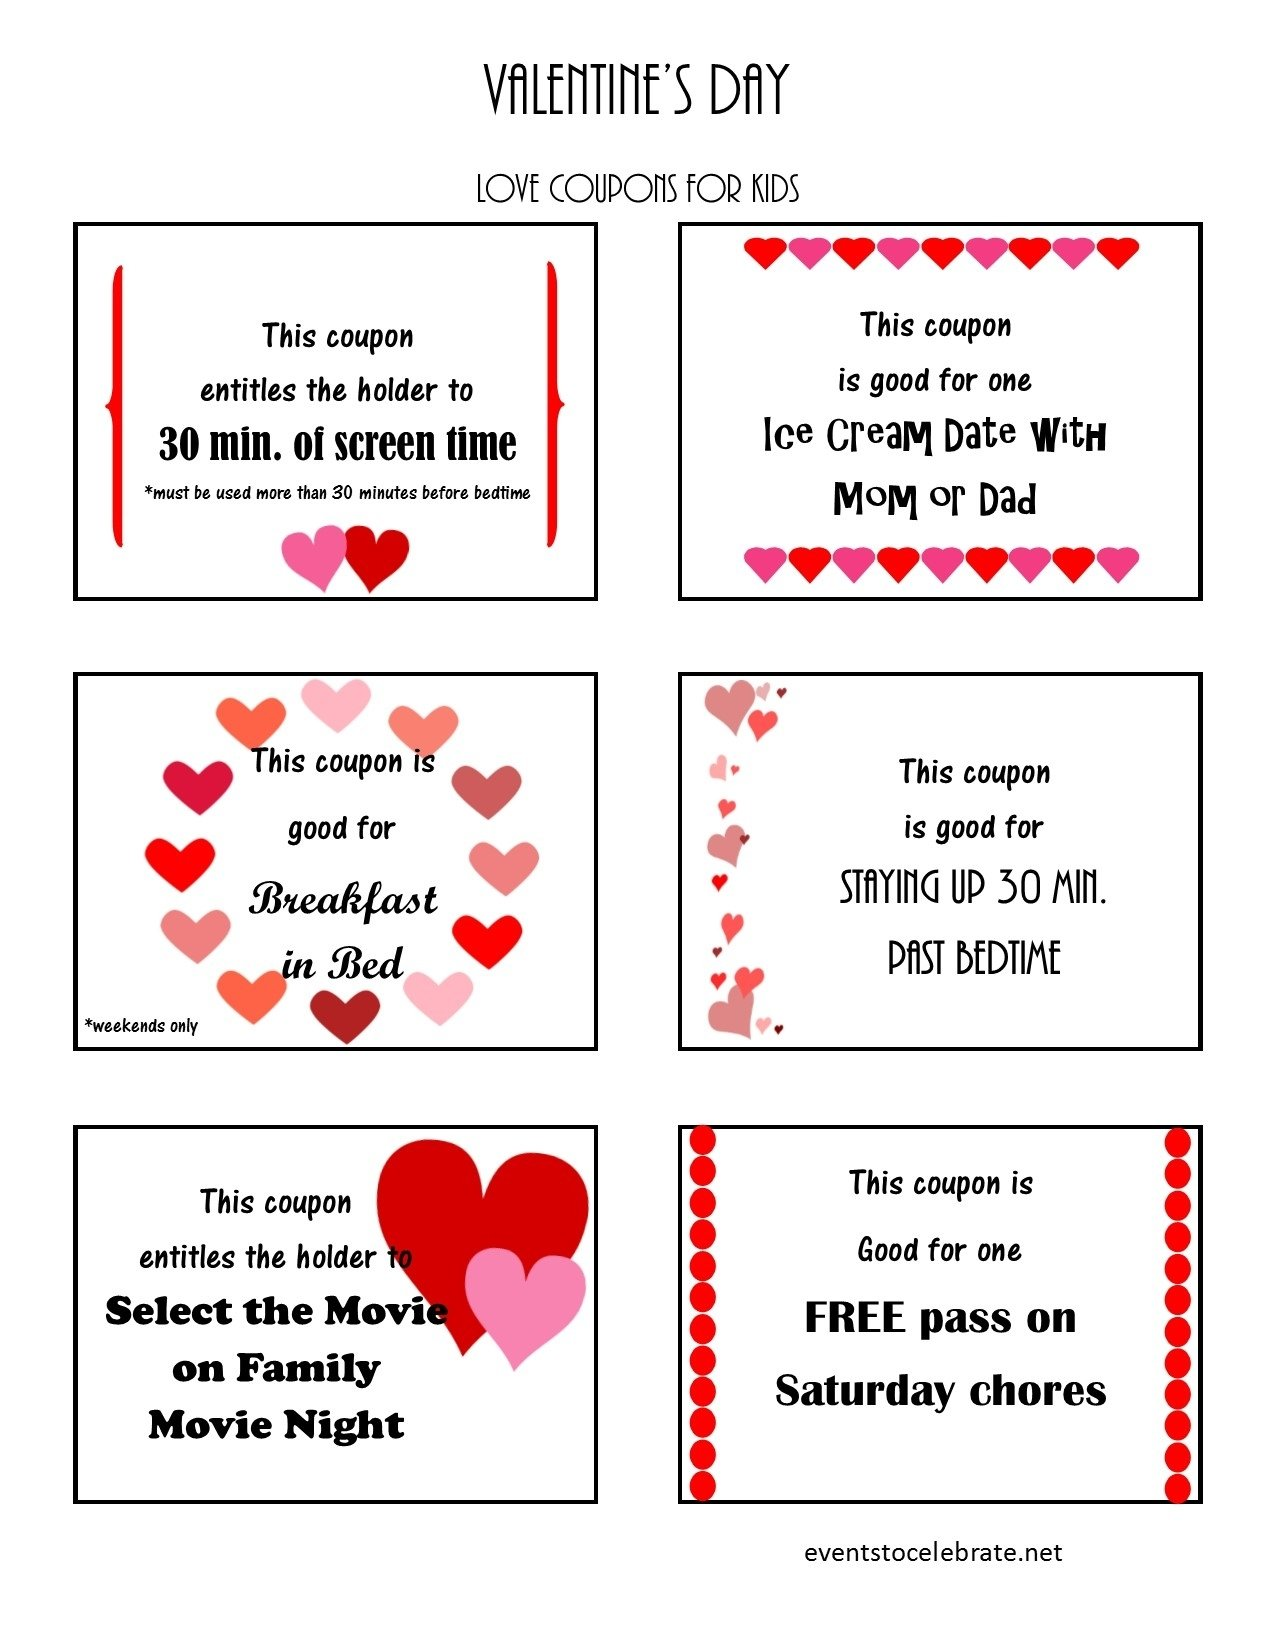 10 Attractive Valentine Coupon Book Ideas For Guys valentines day coupon book template for boyfriend freebies journalism